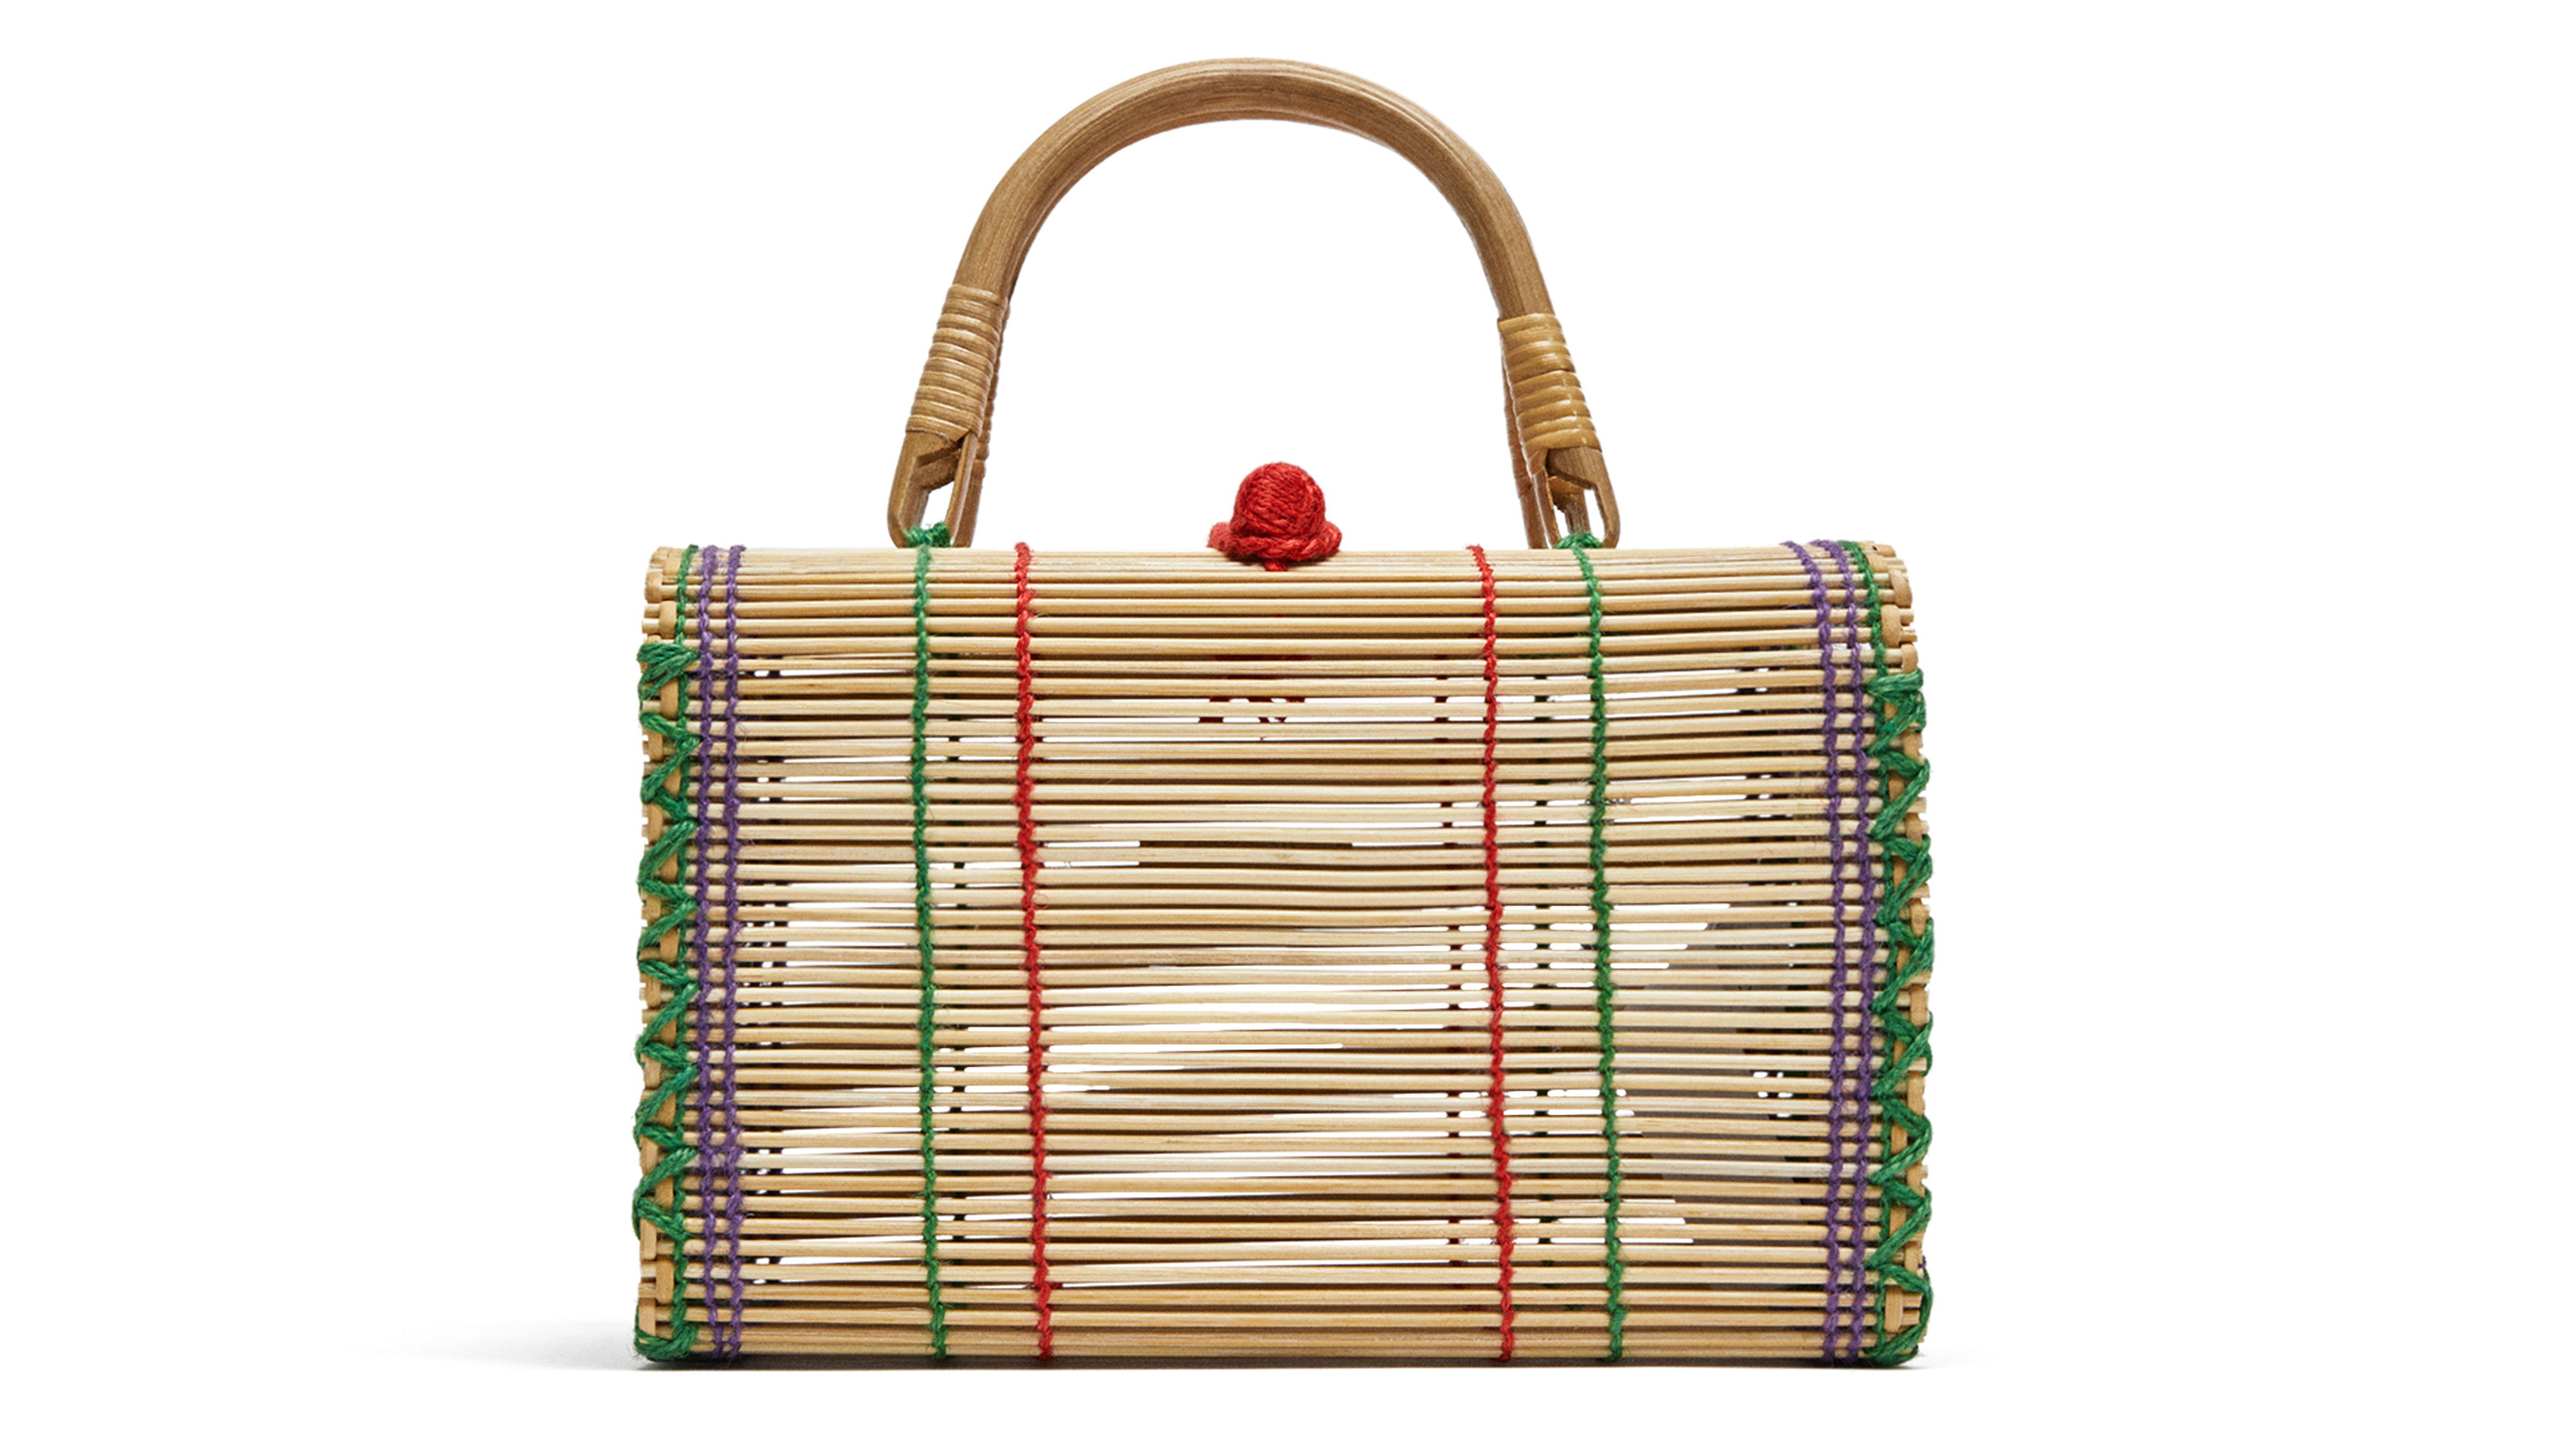 Zara Multicoloured Straw Bag with Topstitching Detail,